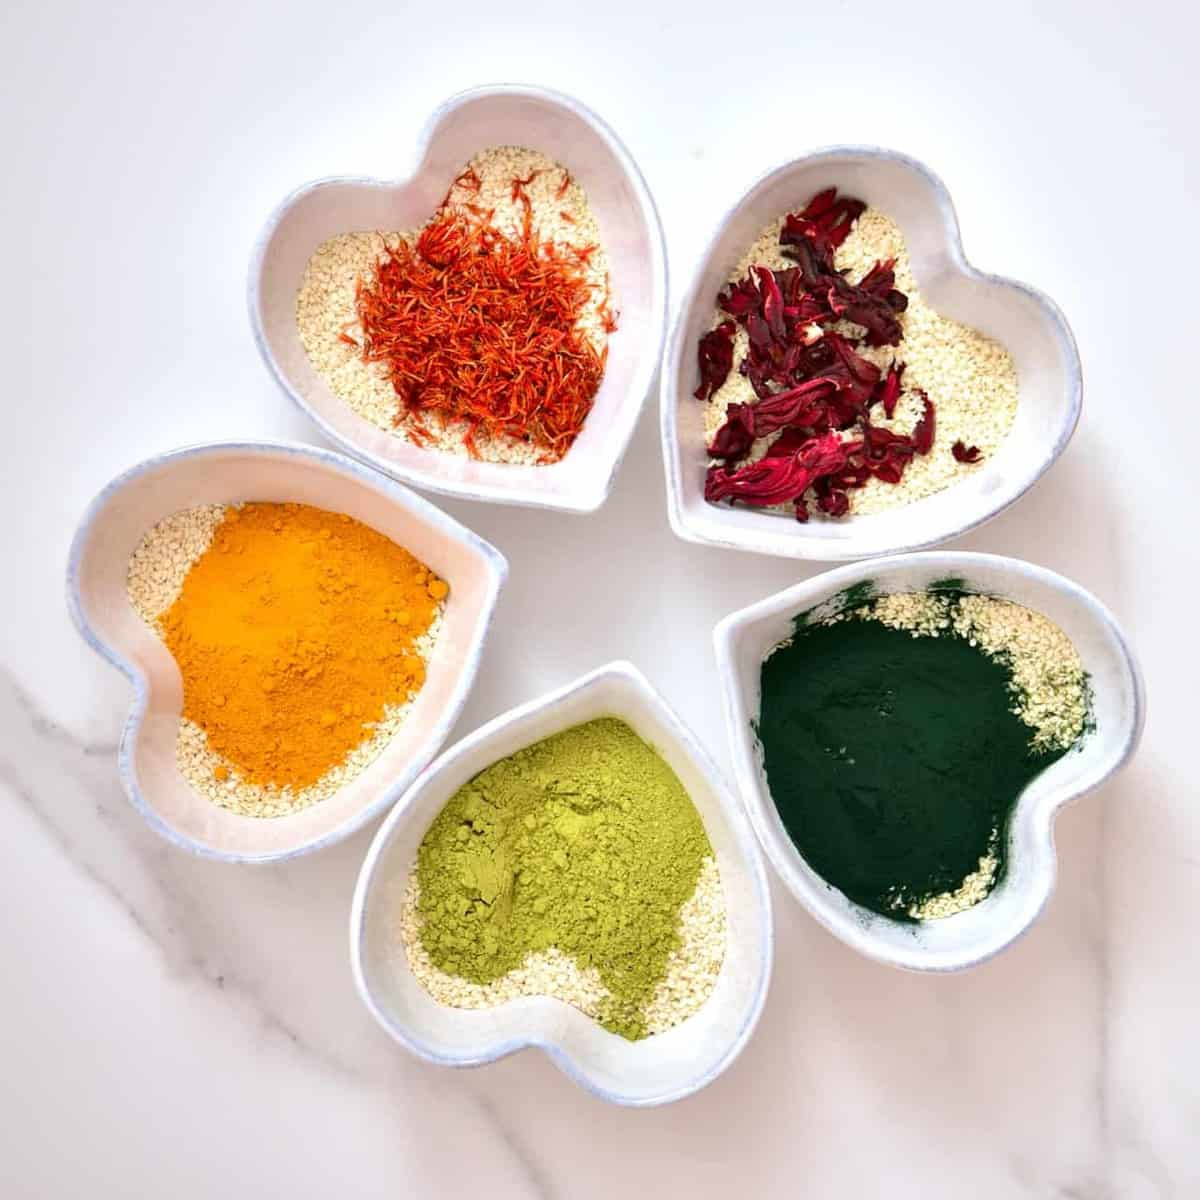 superfood powders and dried flowers being used to make all-natural food colouring options to colour sesame seeds